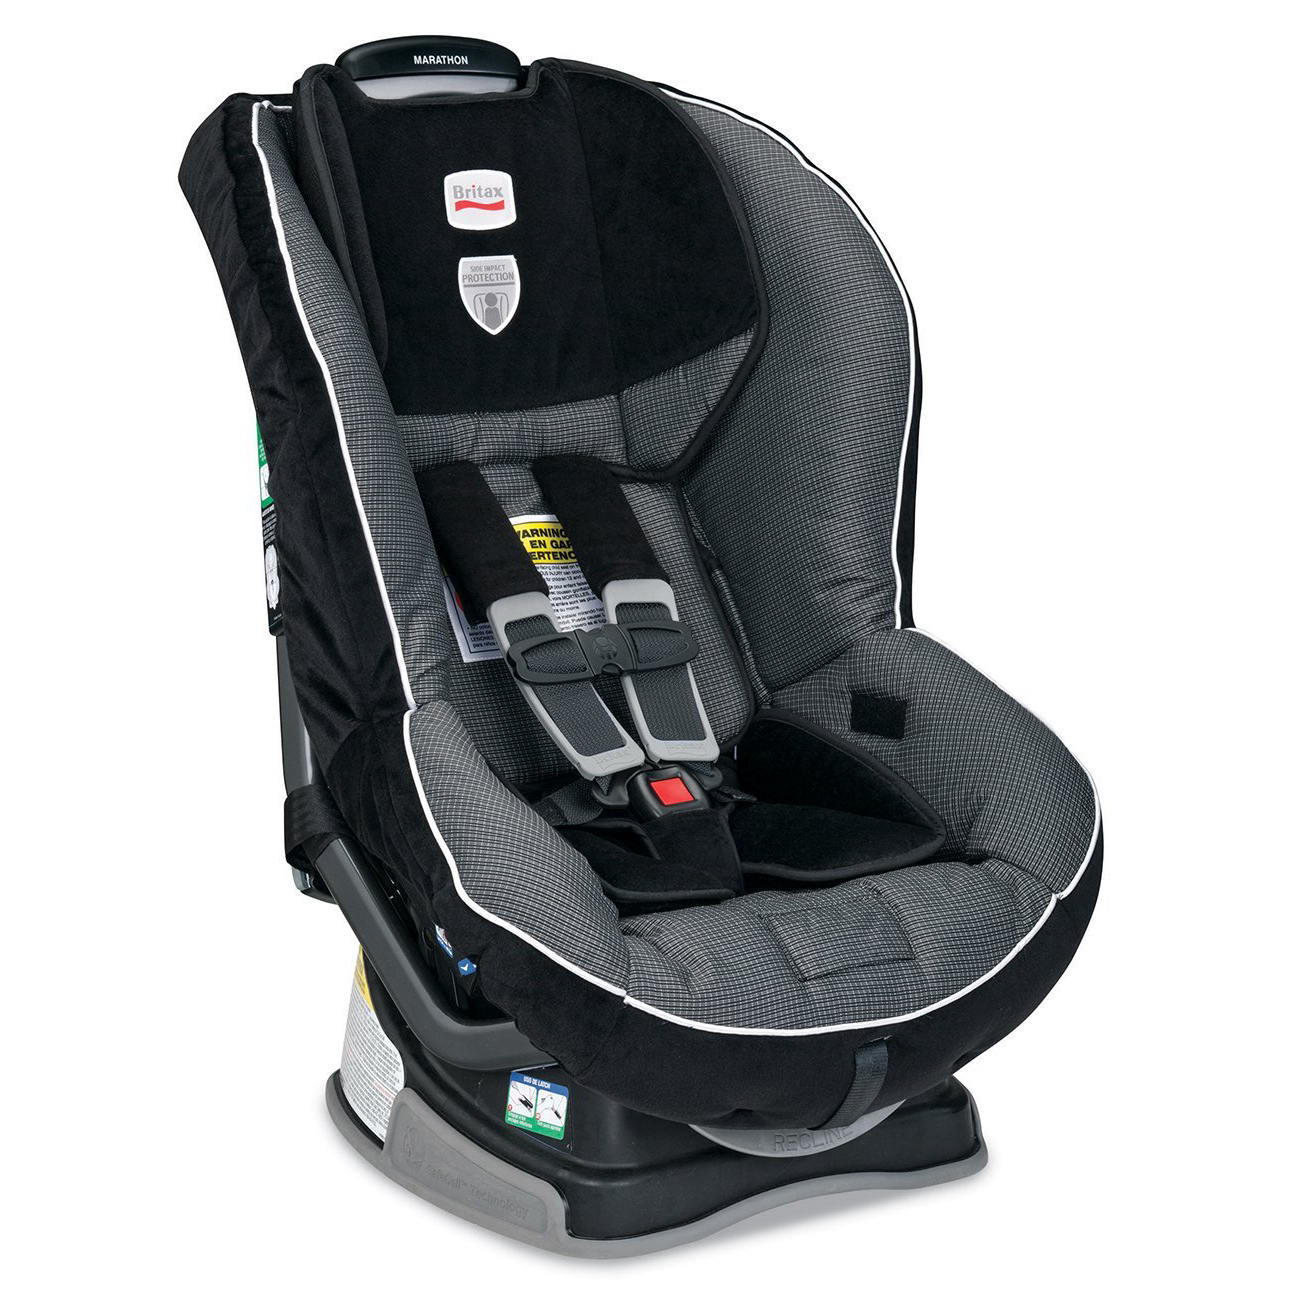 graco contender 65 vs britax marathon. Black Bedroom Furniture Sets. Home Design Ideas